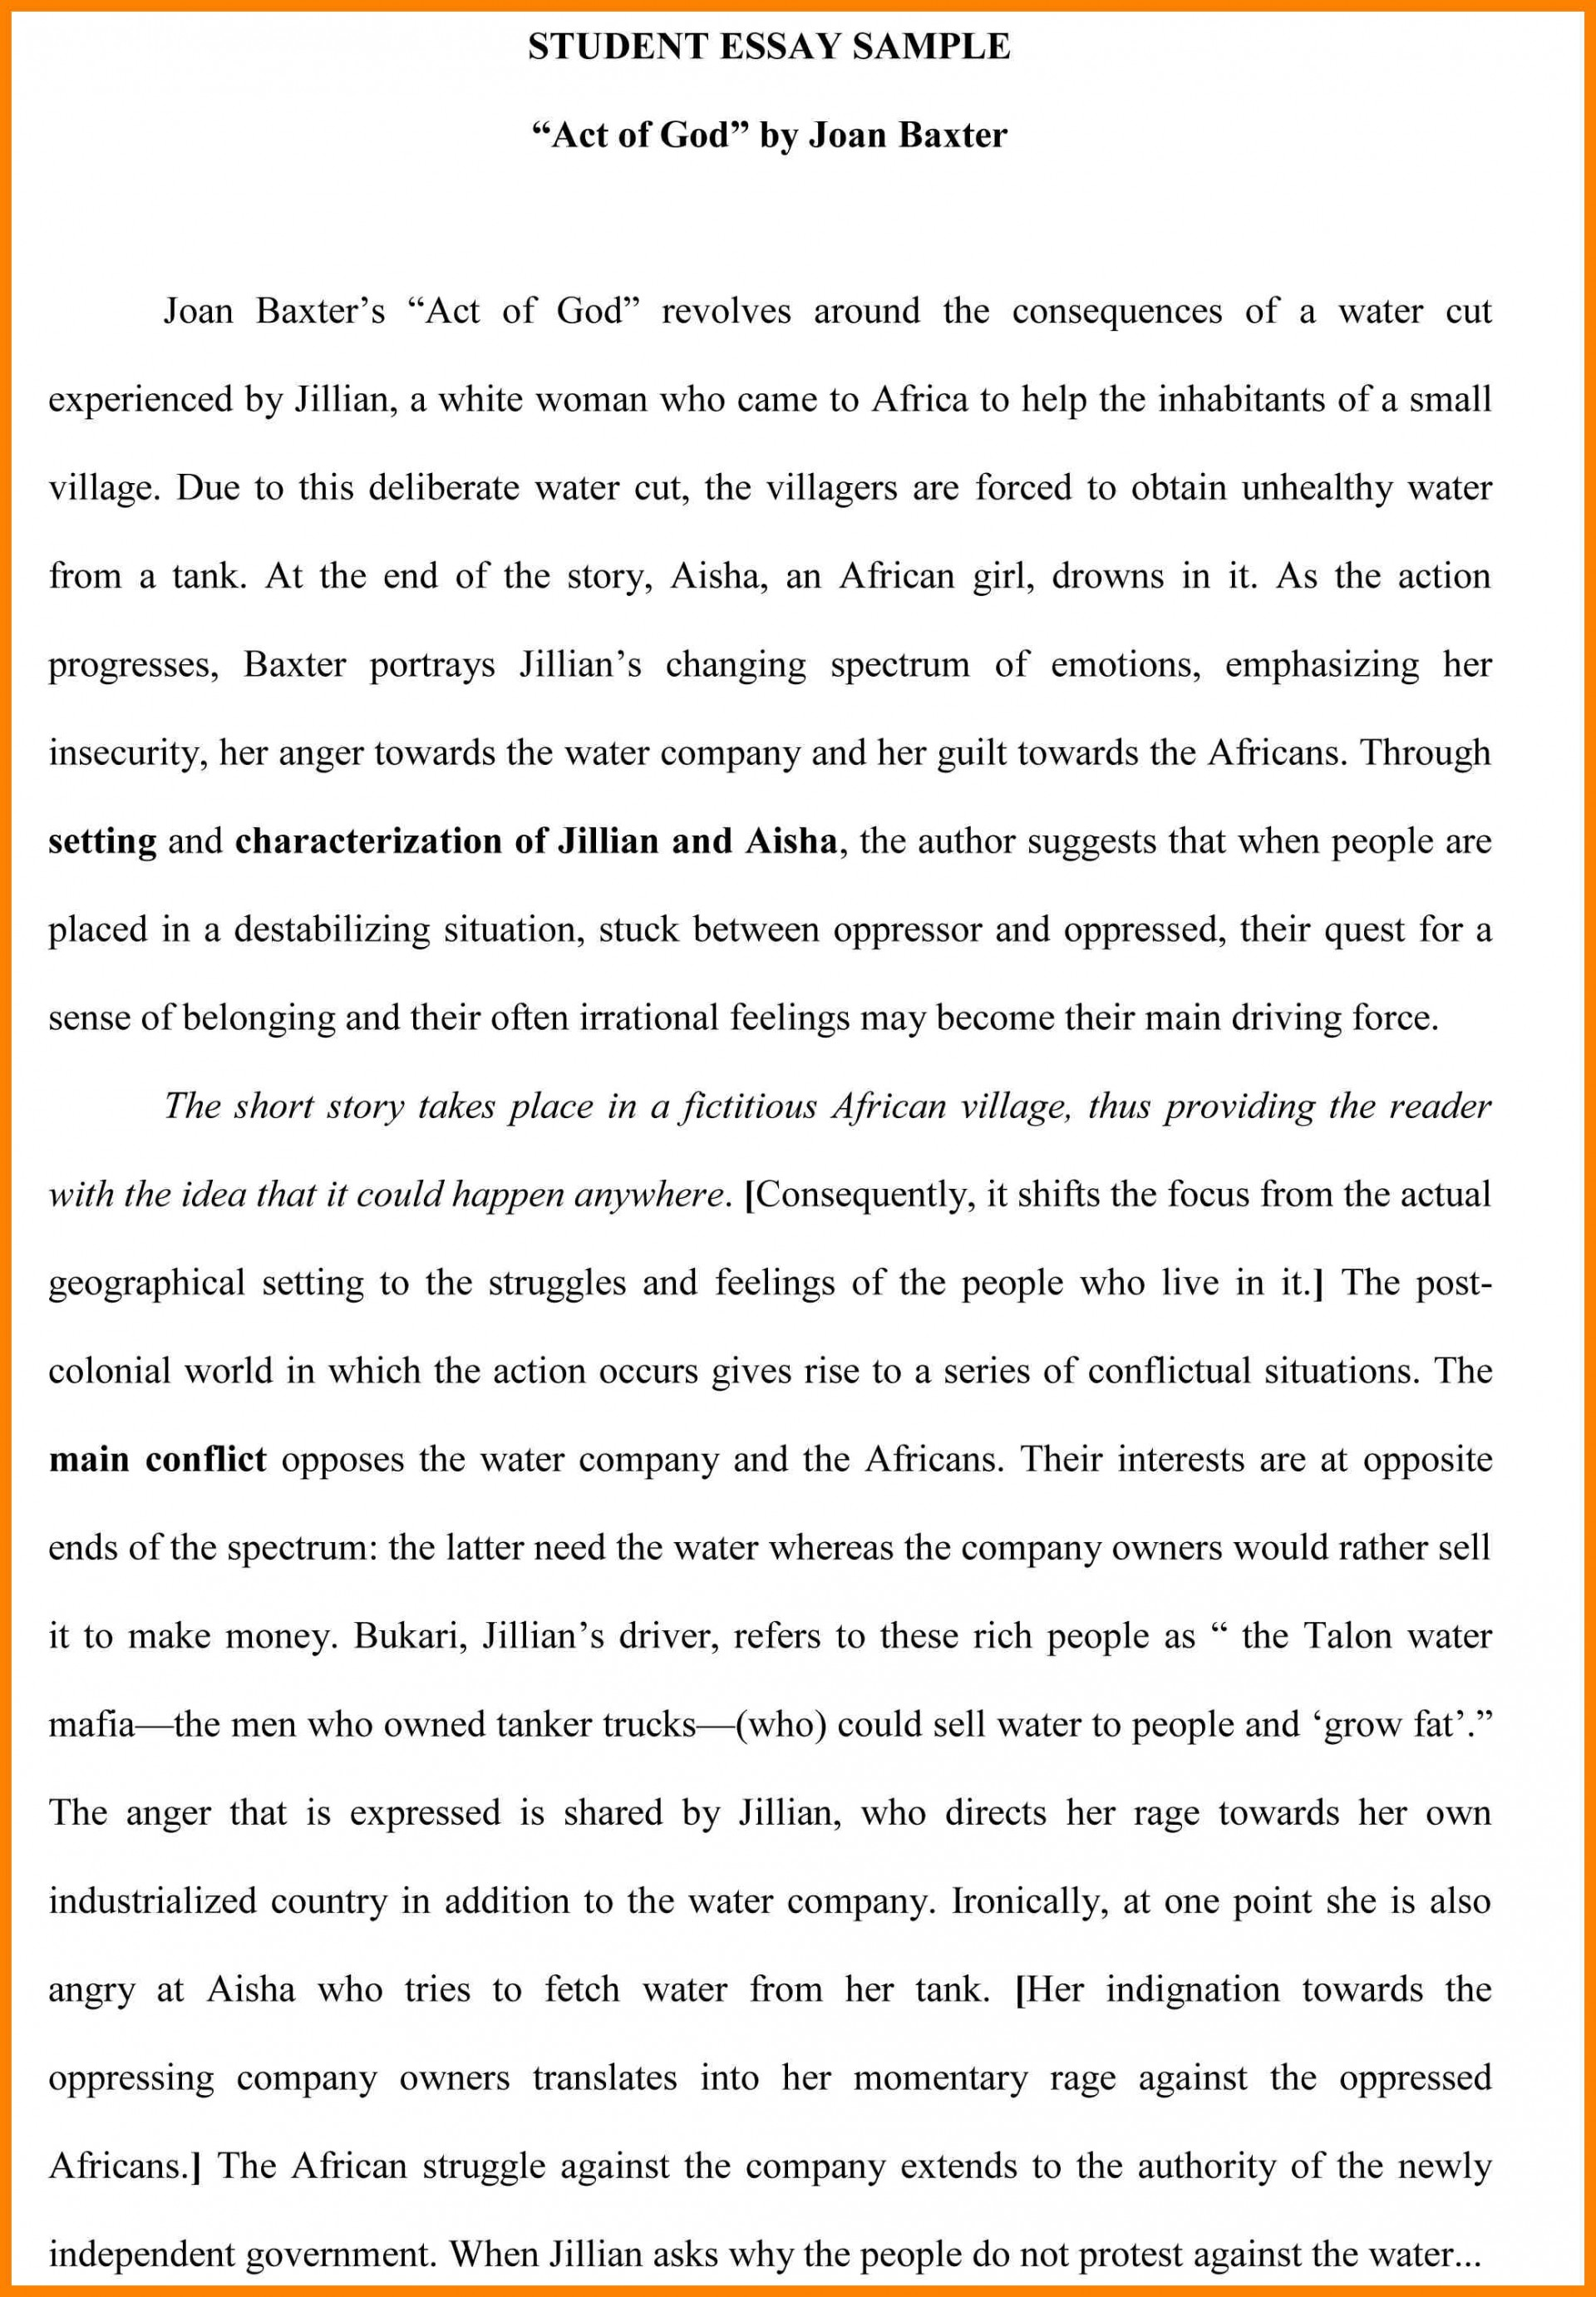 002 Examples Of Process Essays Pdf Essay Example College St Paper Sample Samples Ielts Topics How To Bake Cake Processchronological Stupendous Photo High School Tagalog For Students 1920